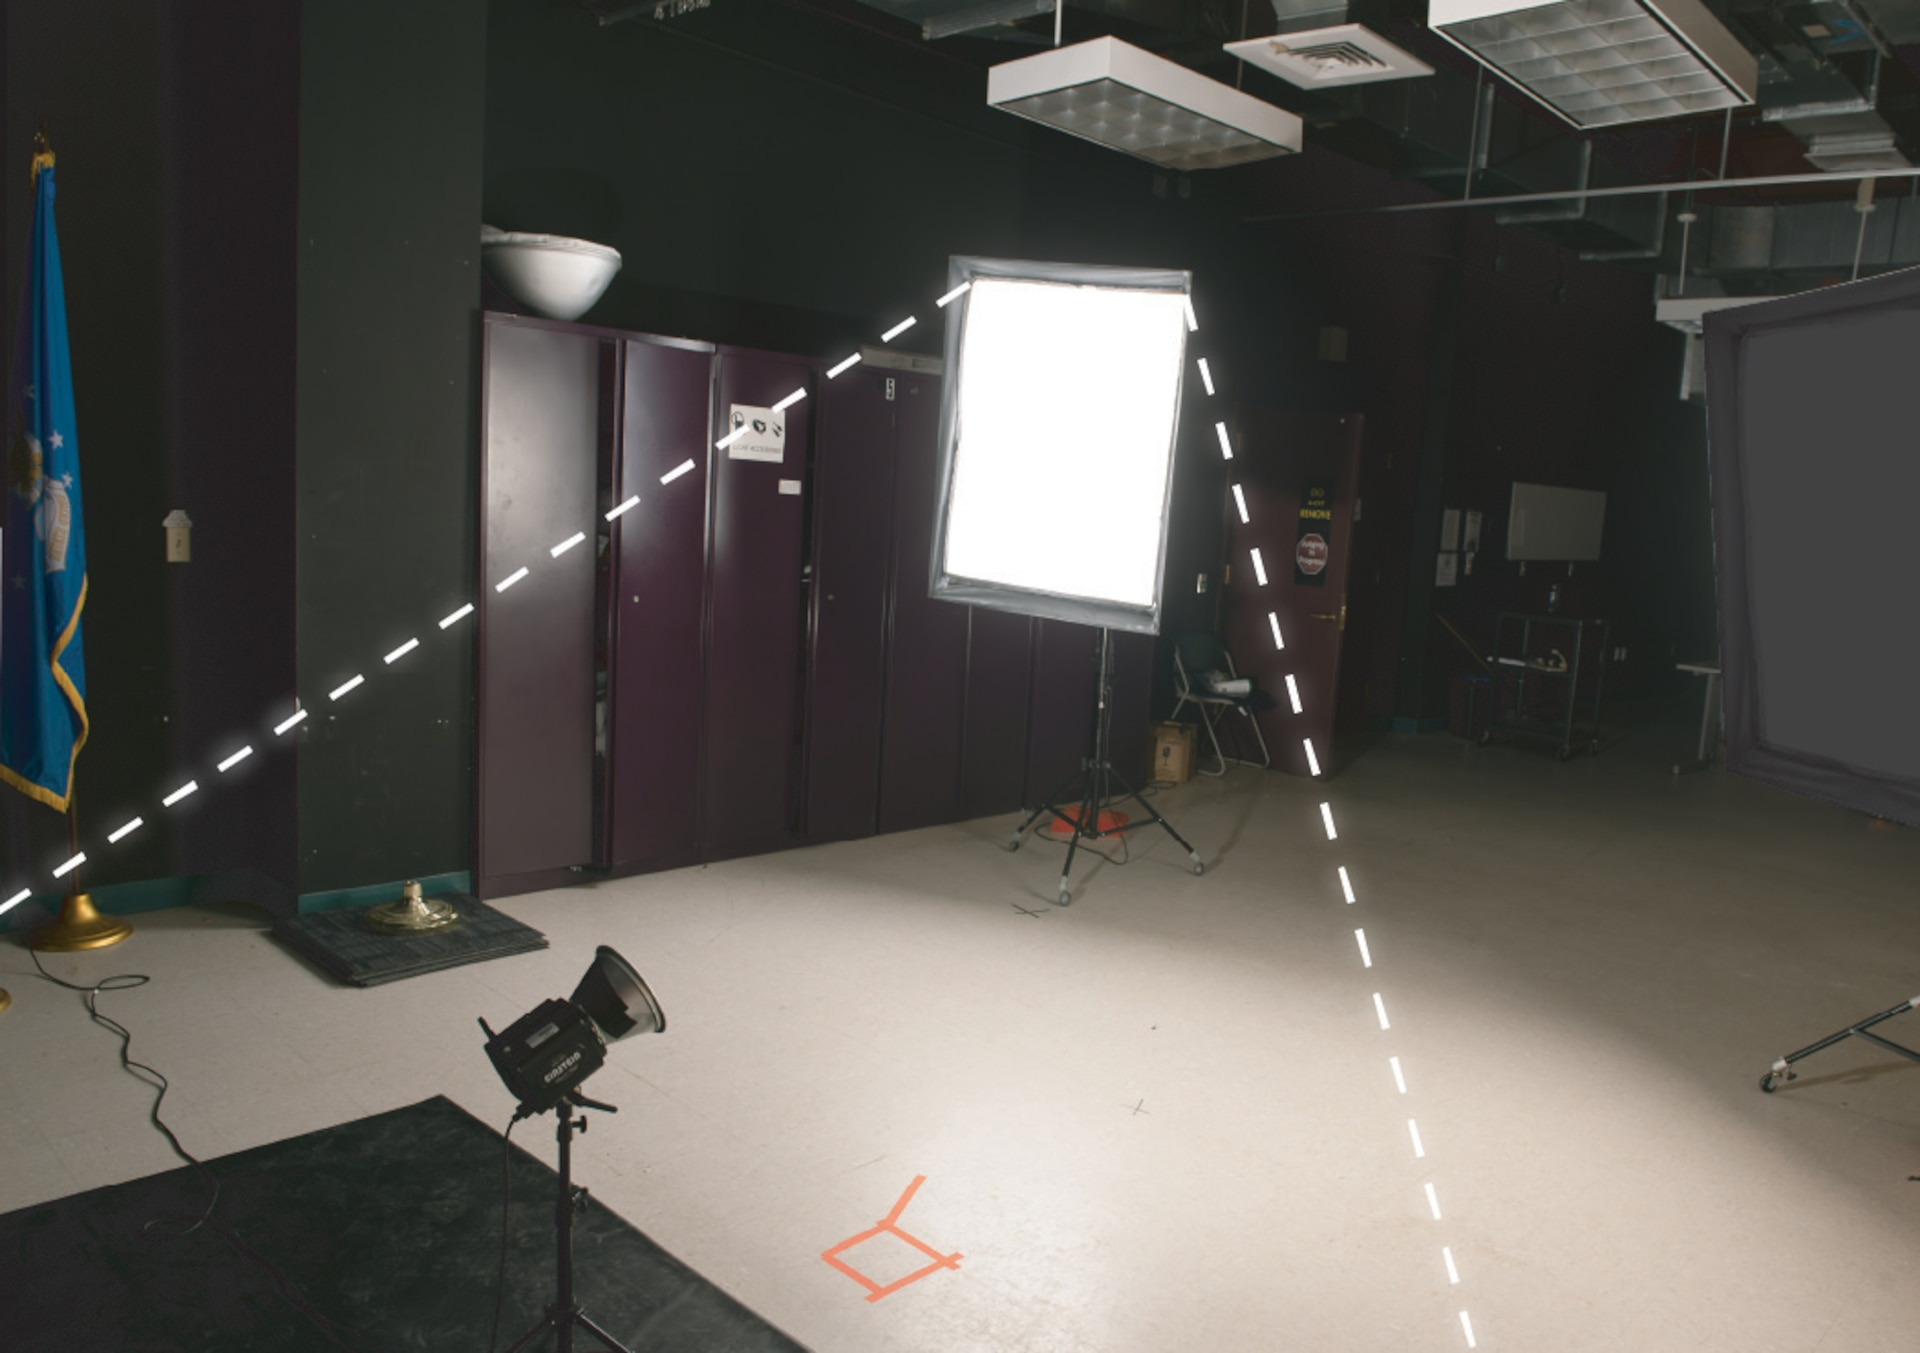 The main light that established exposure and is the primary, brightest source of light in a studio setting.